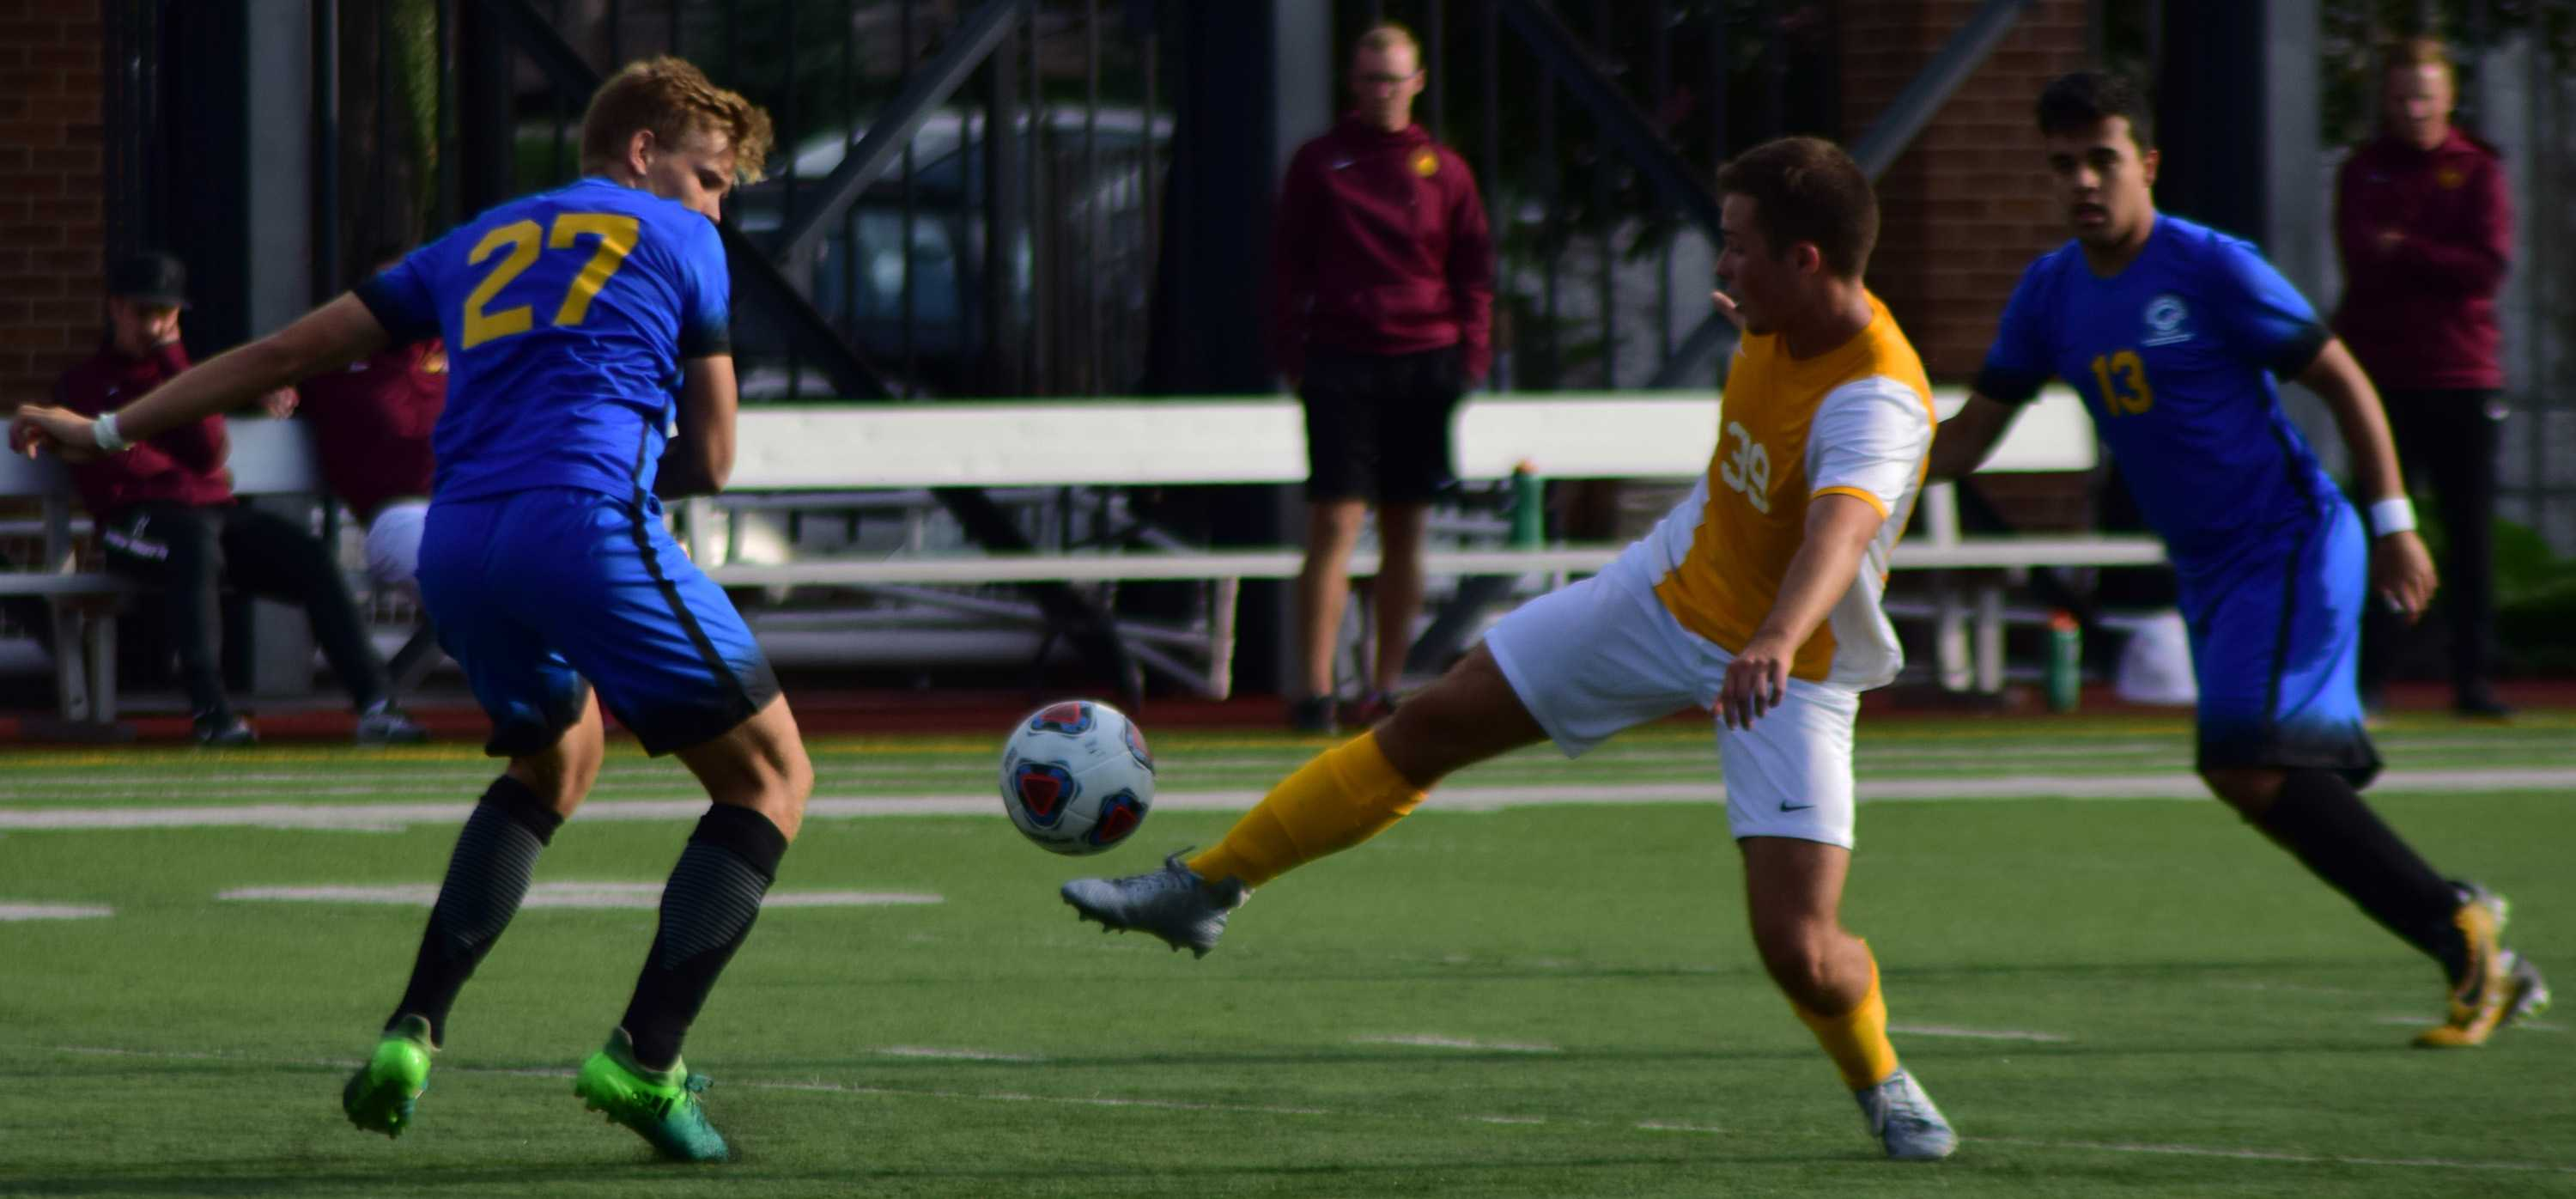 Men's soccer falls short in first two games